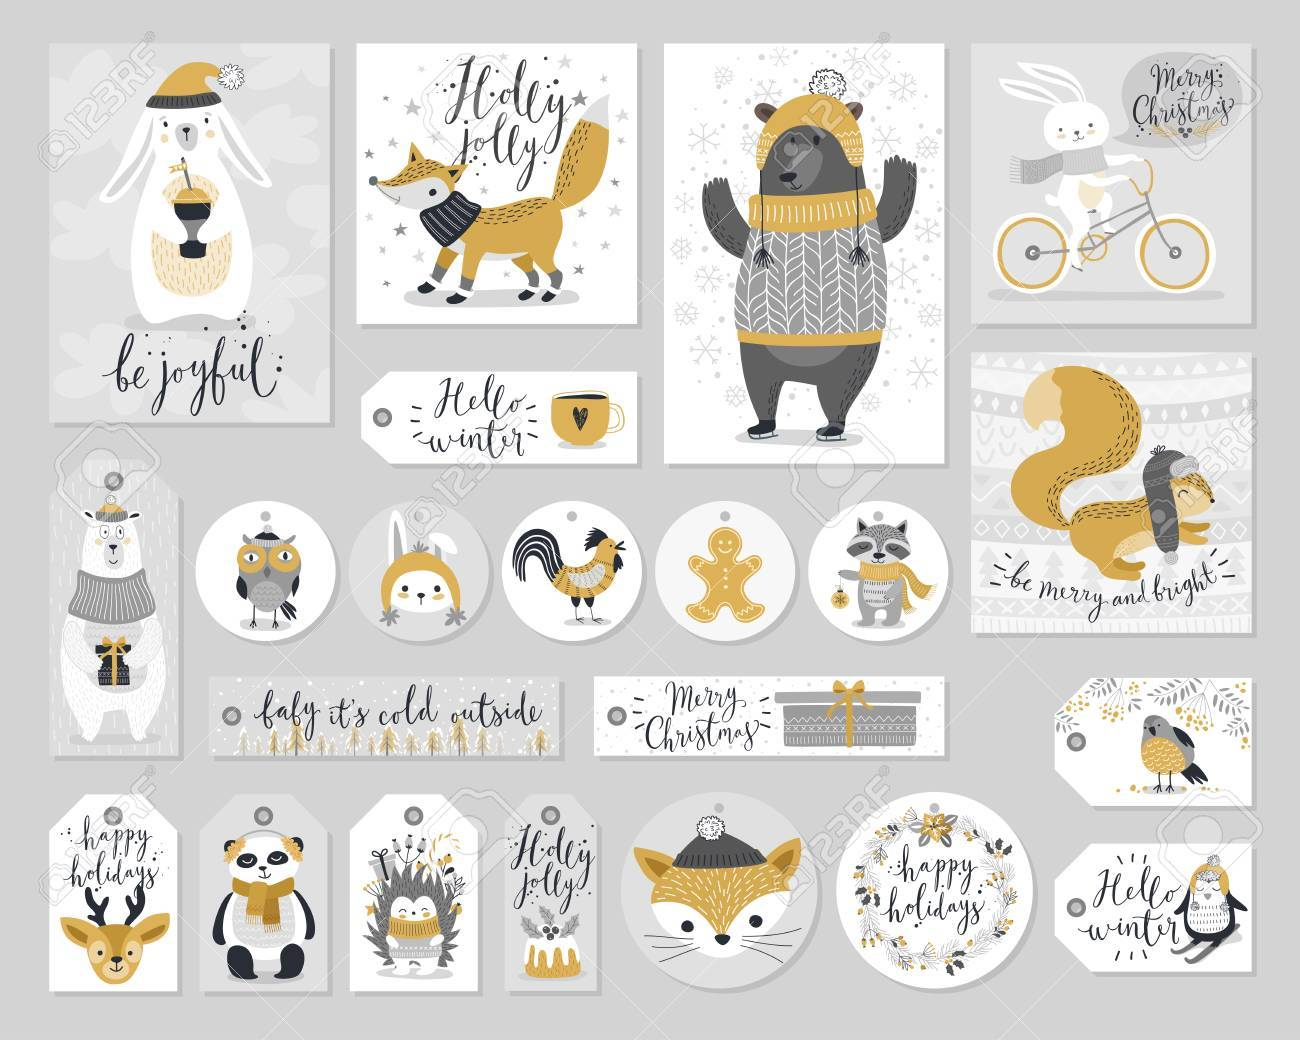 Christmas set, hand drawn style - calligraphy, animals and other elements. - 67594031